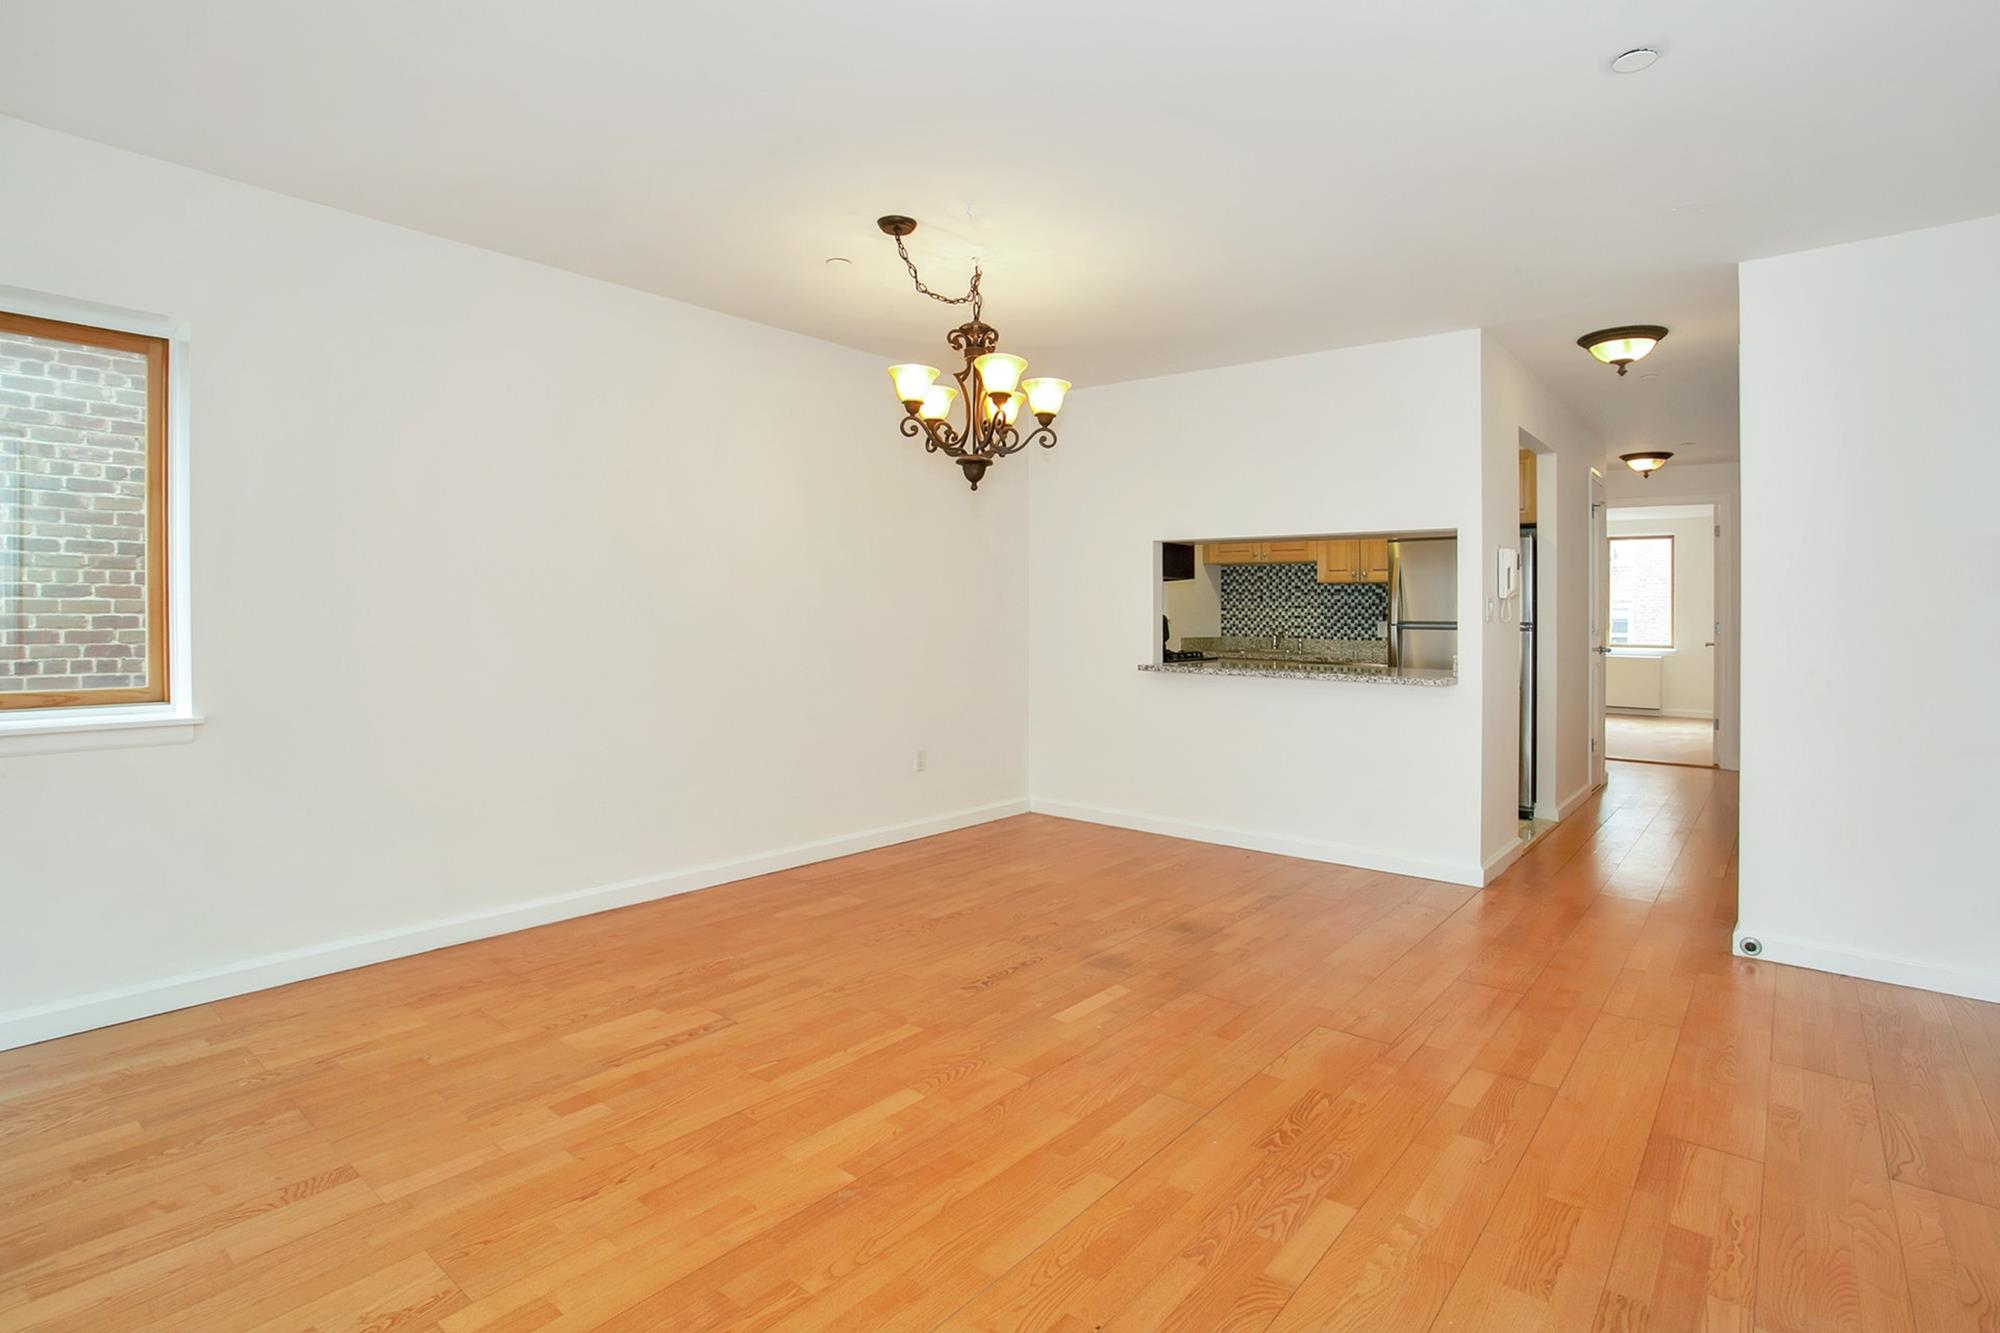 3-Bd. Contemporary Condo w/ Balcony, Laundry in Unit & Indoor Parking